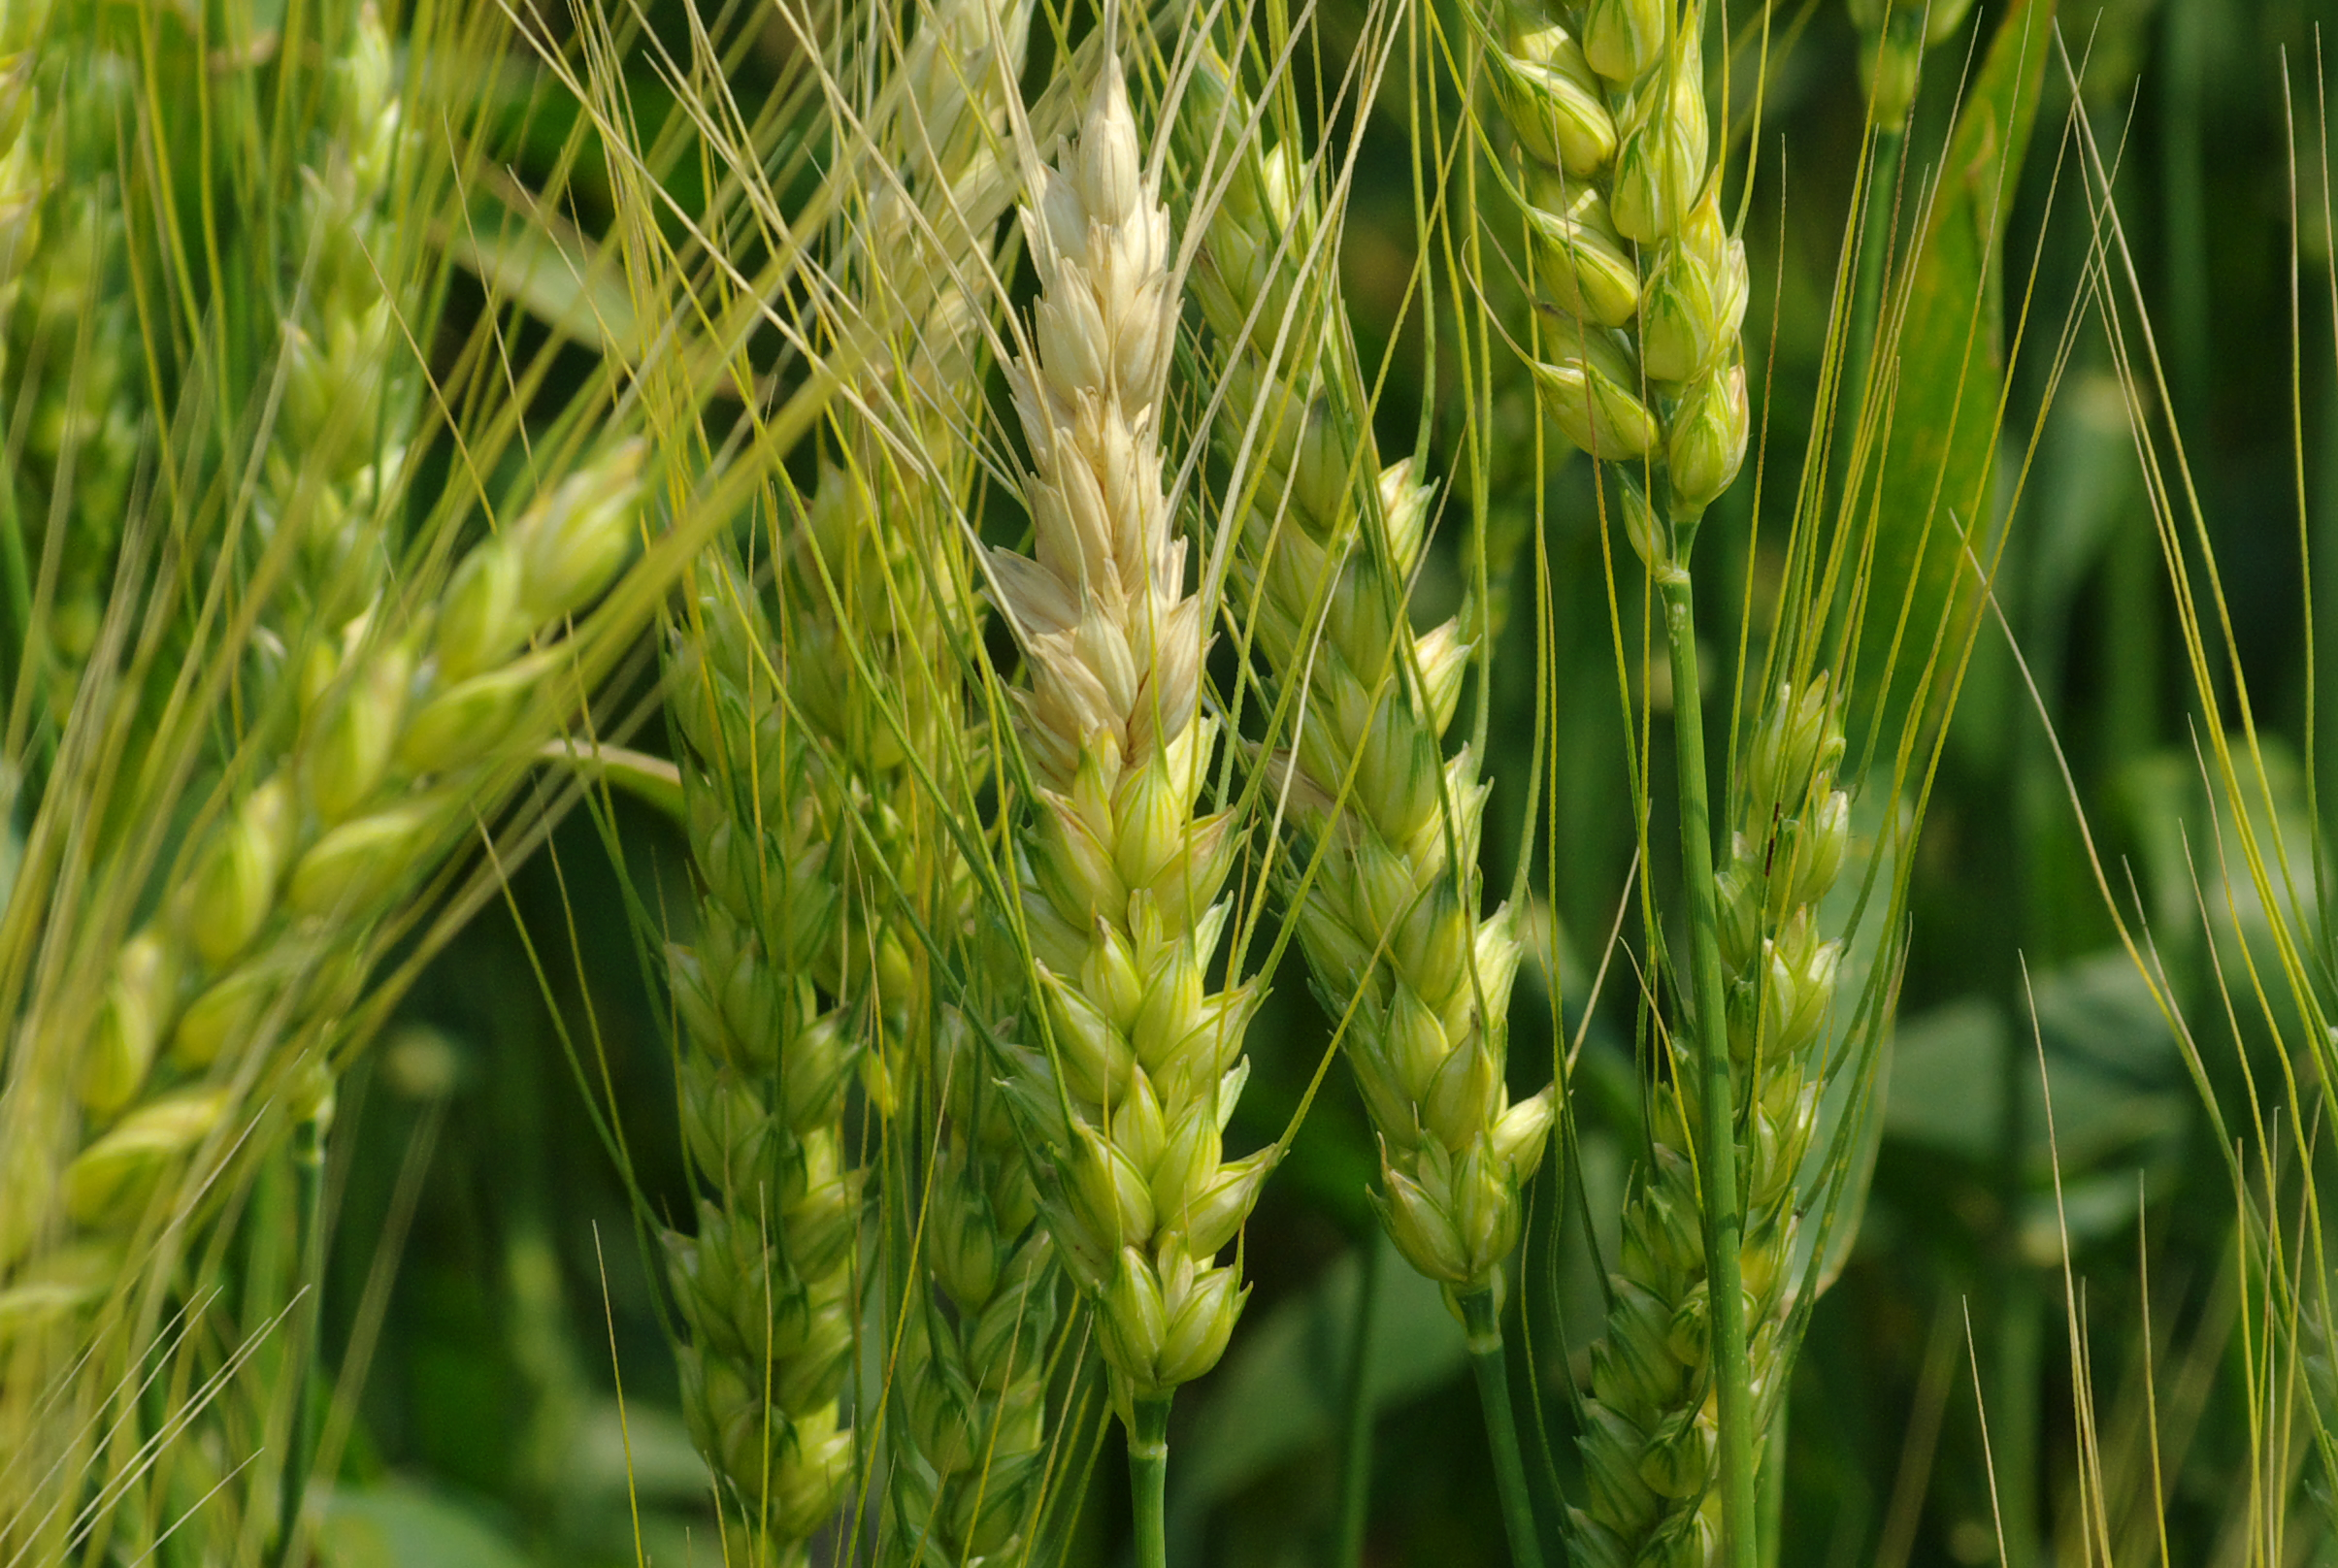 Fusarium head blight bleaching can occur on single spikelets and spread.